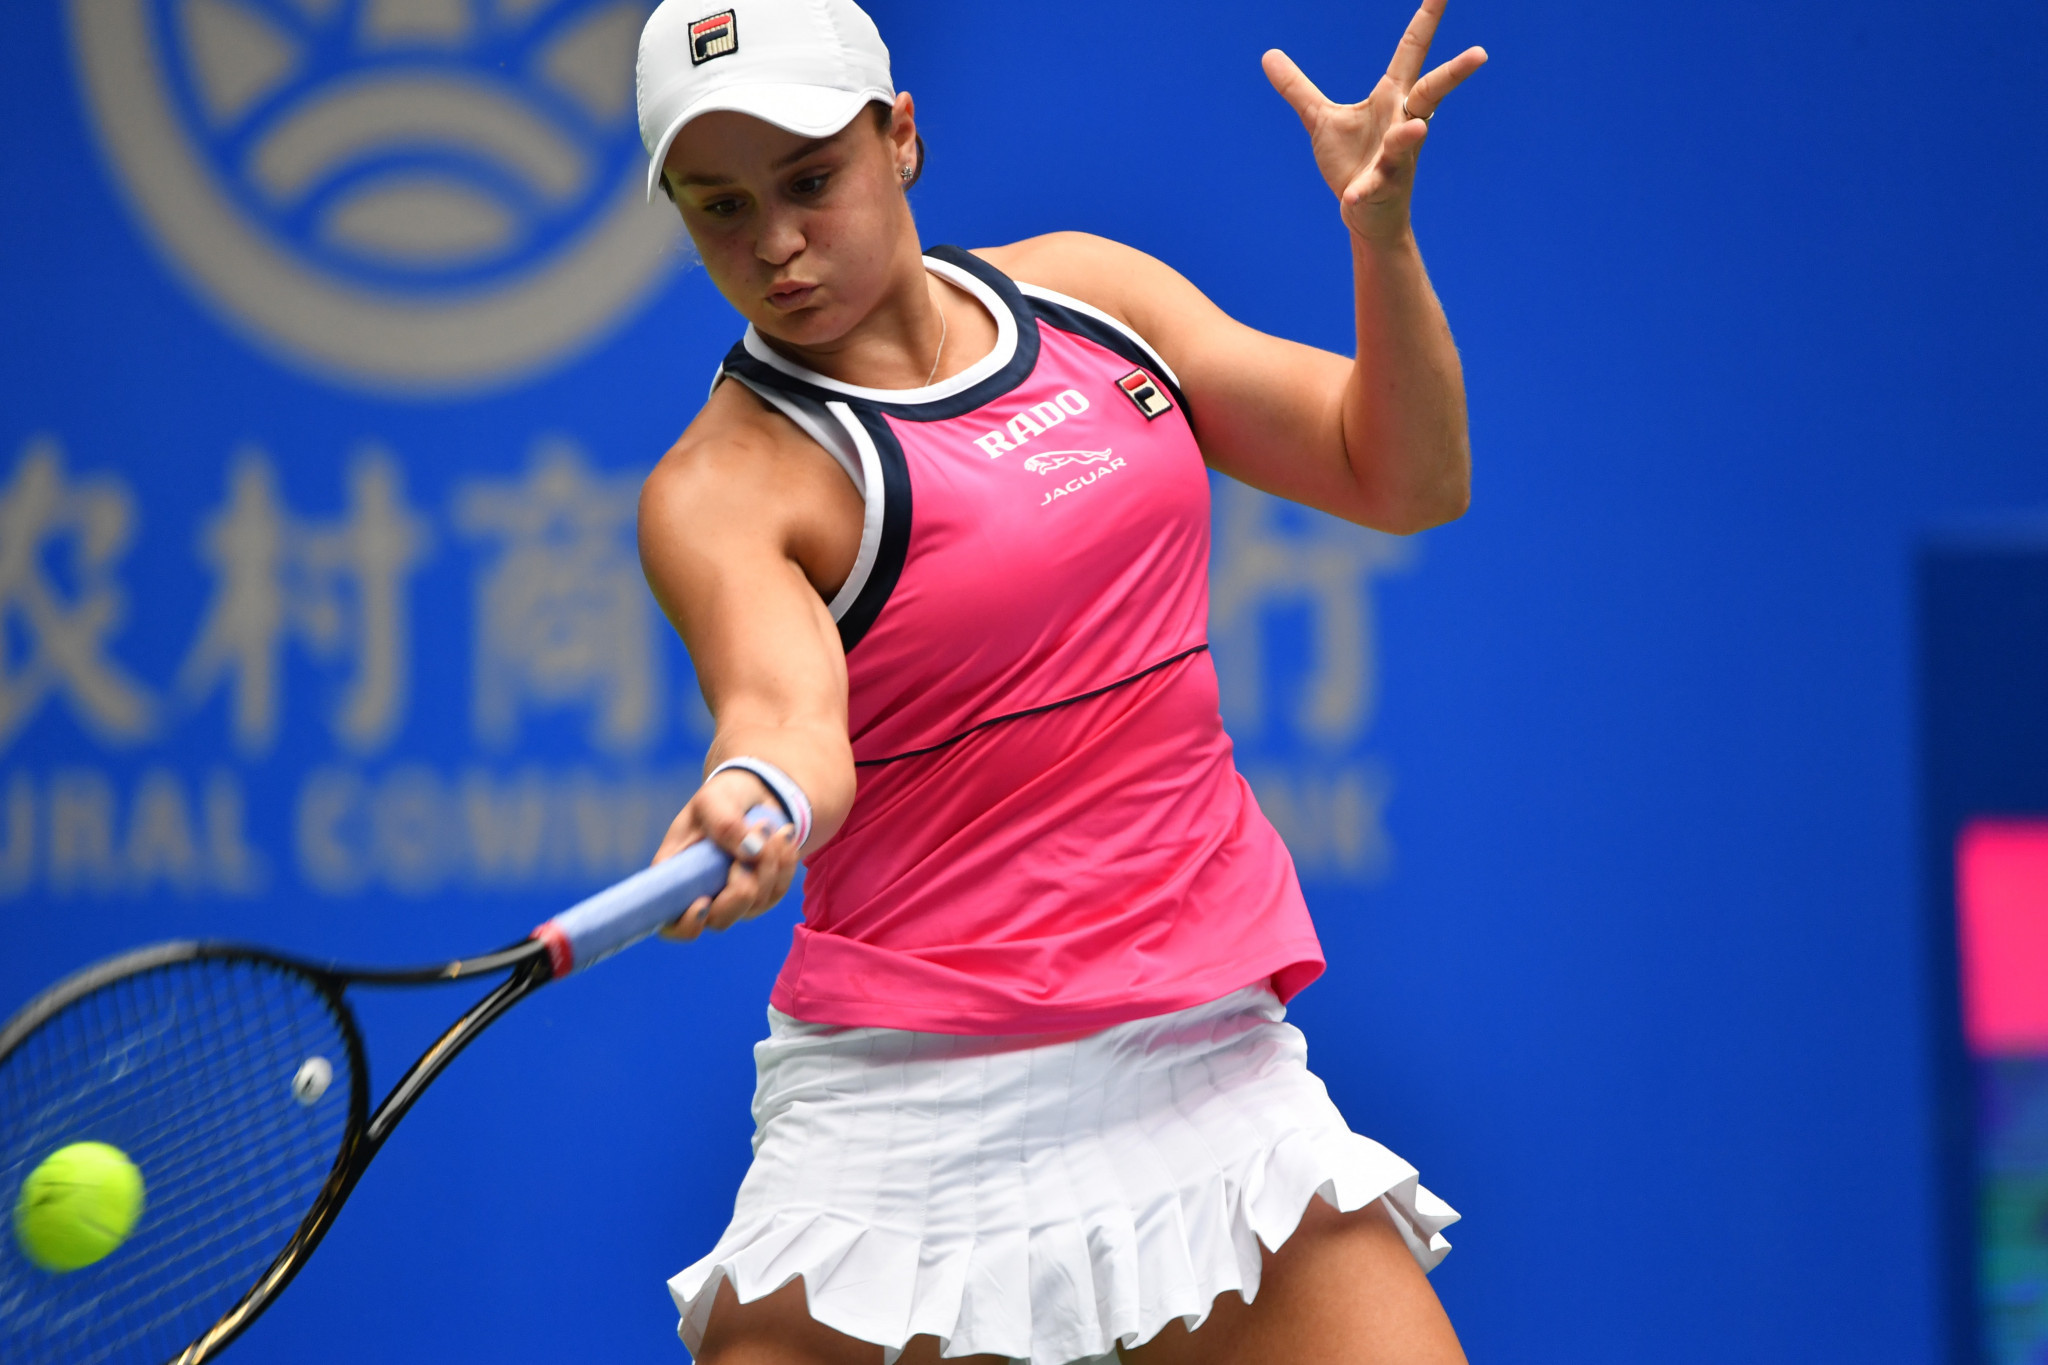 Australia's Ashleigh Barty advanced to the Wuhan Open quarter-finals ©Getty Images